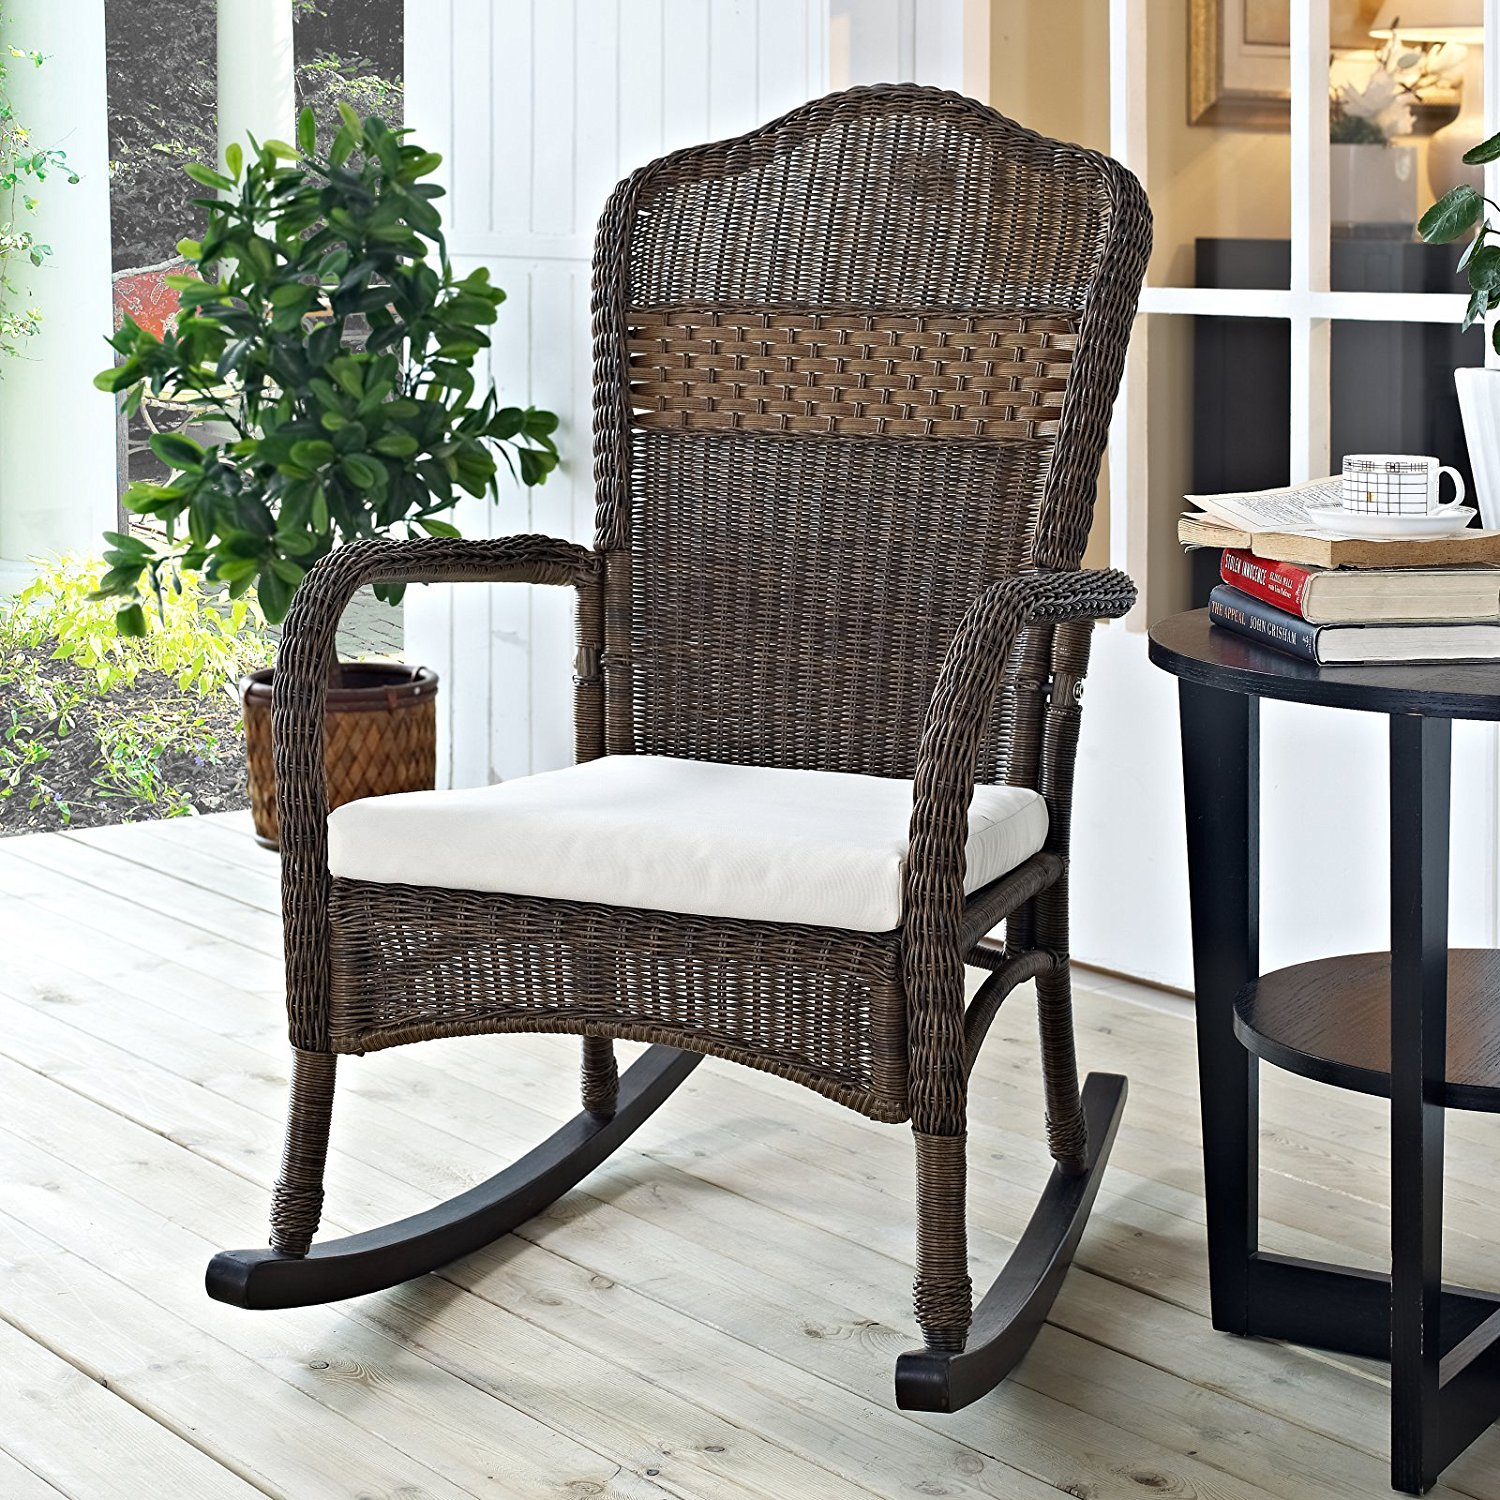 Cheap Wicker Rocking Chair Sale Find Wicker Rocking Chair Sale